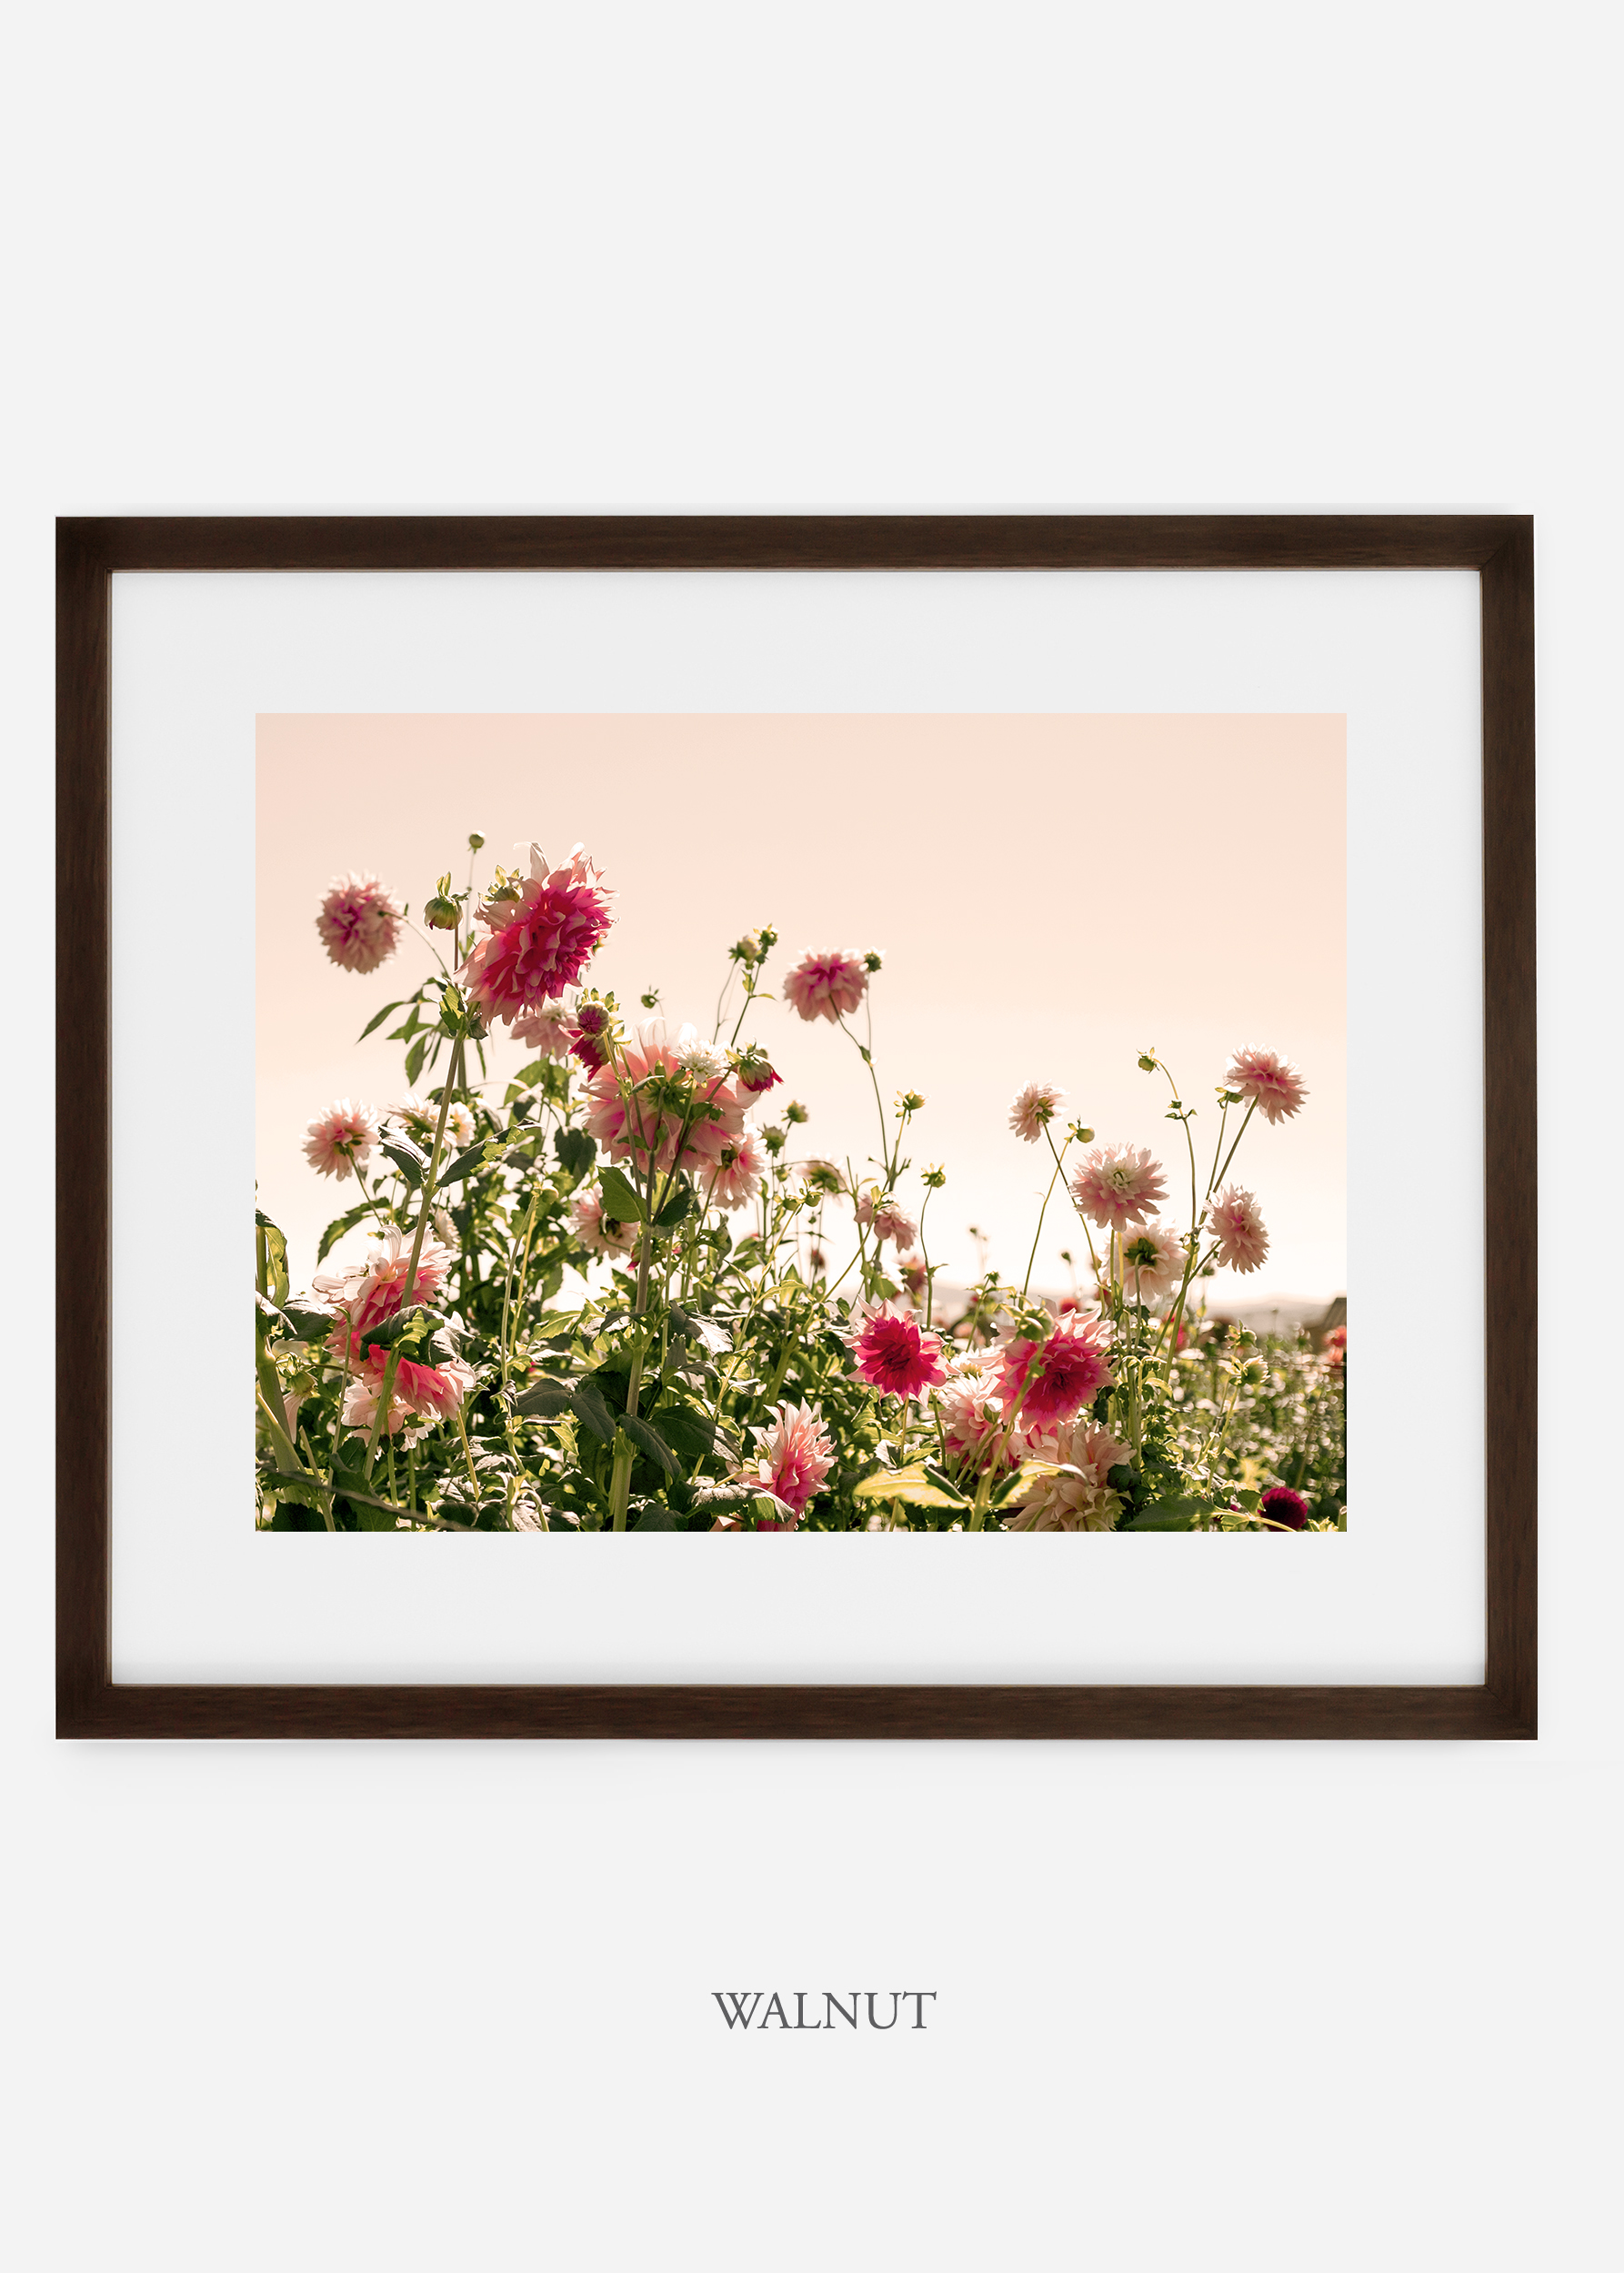 wilder-california-walnutframe-dahlia-7-minimal-botanical-print-art-interior-design.jpg